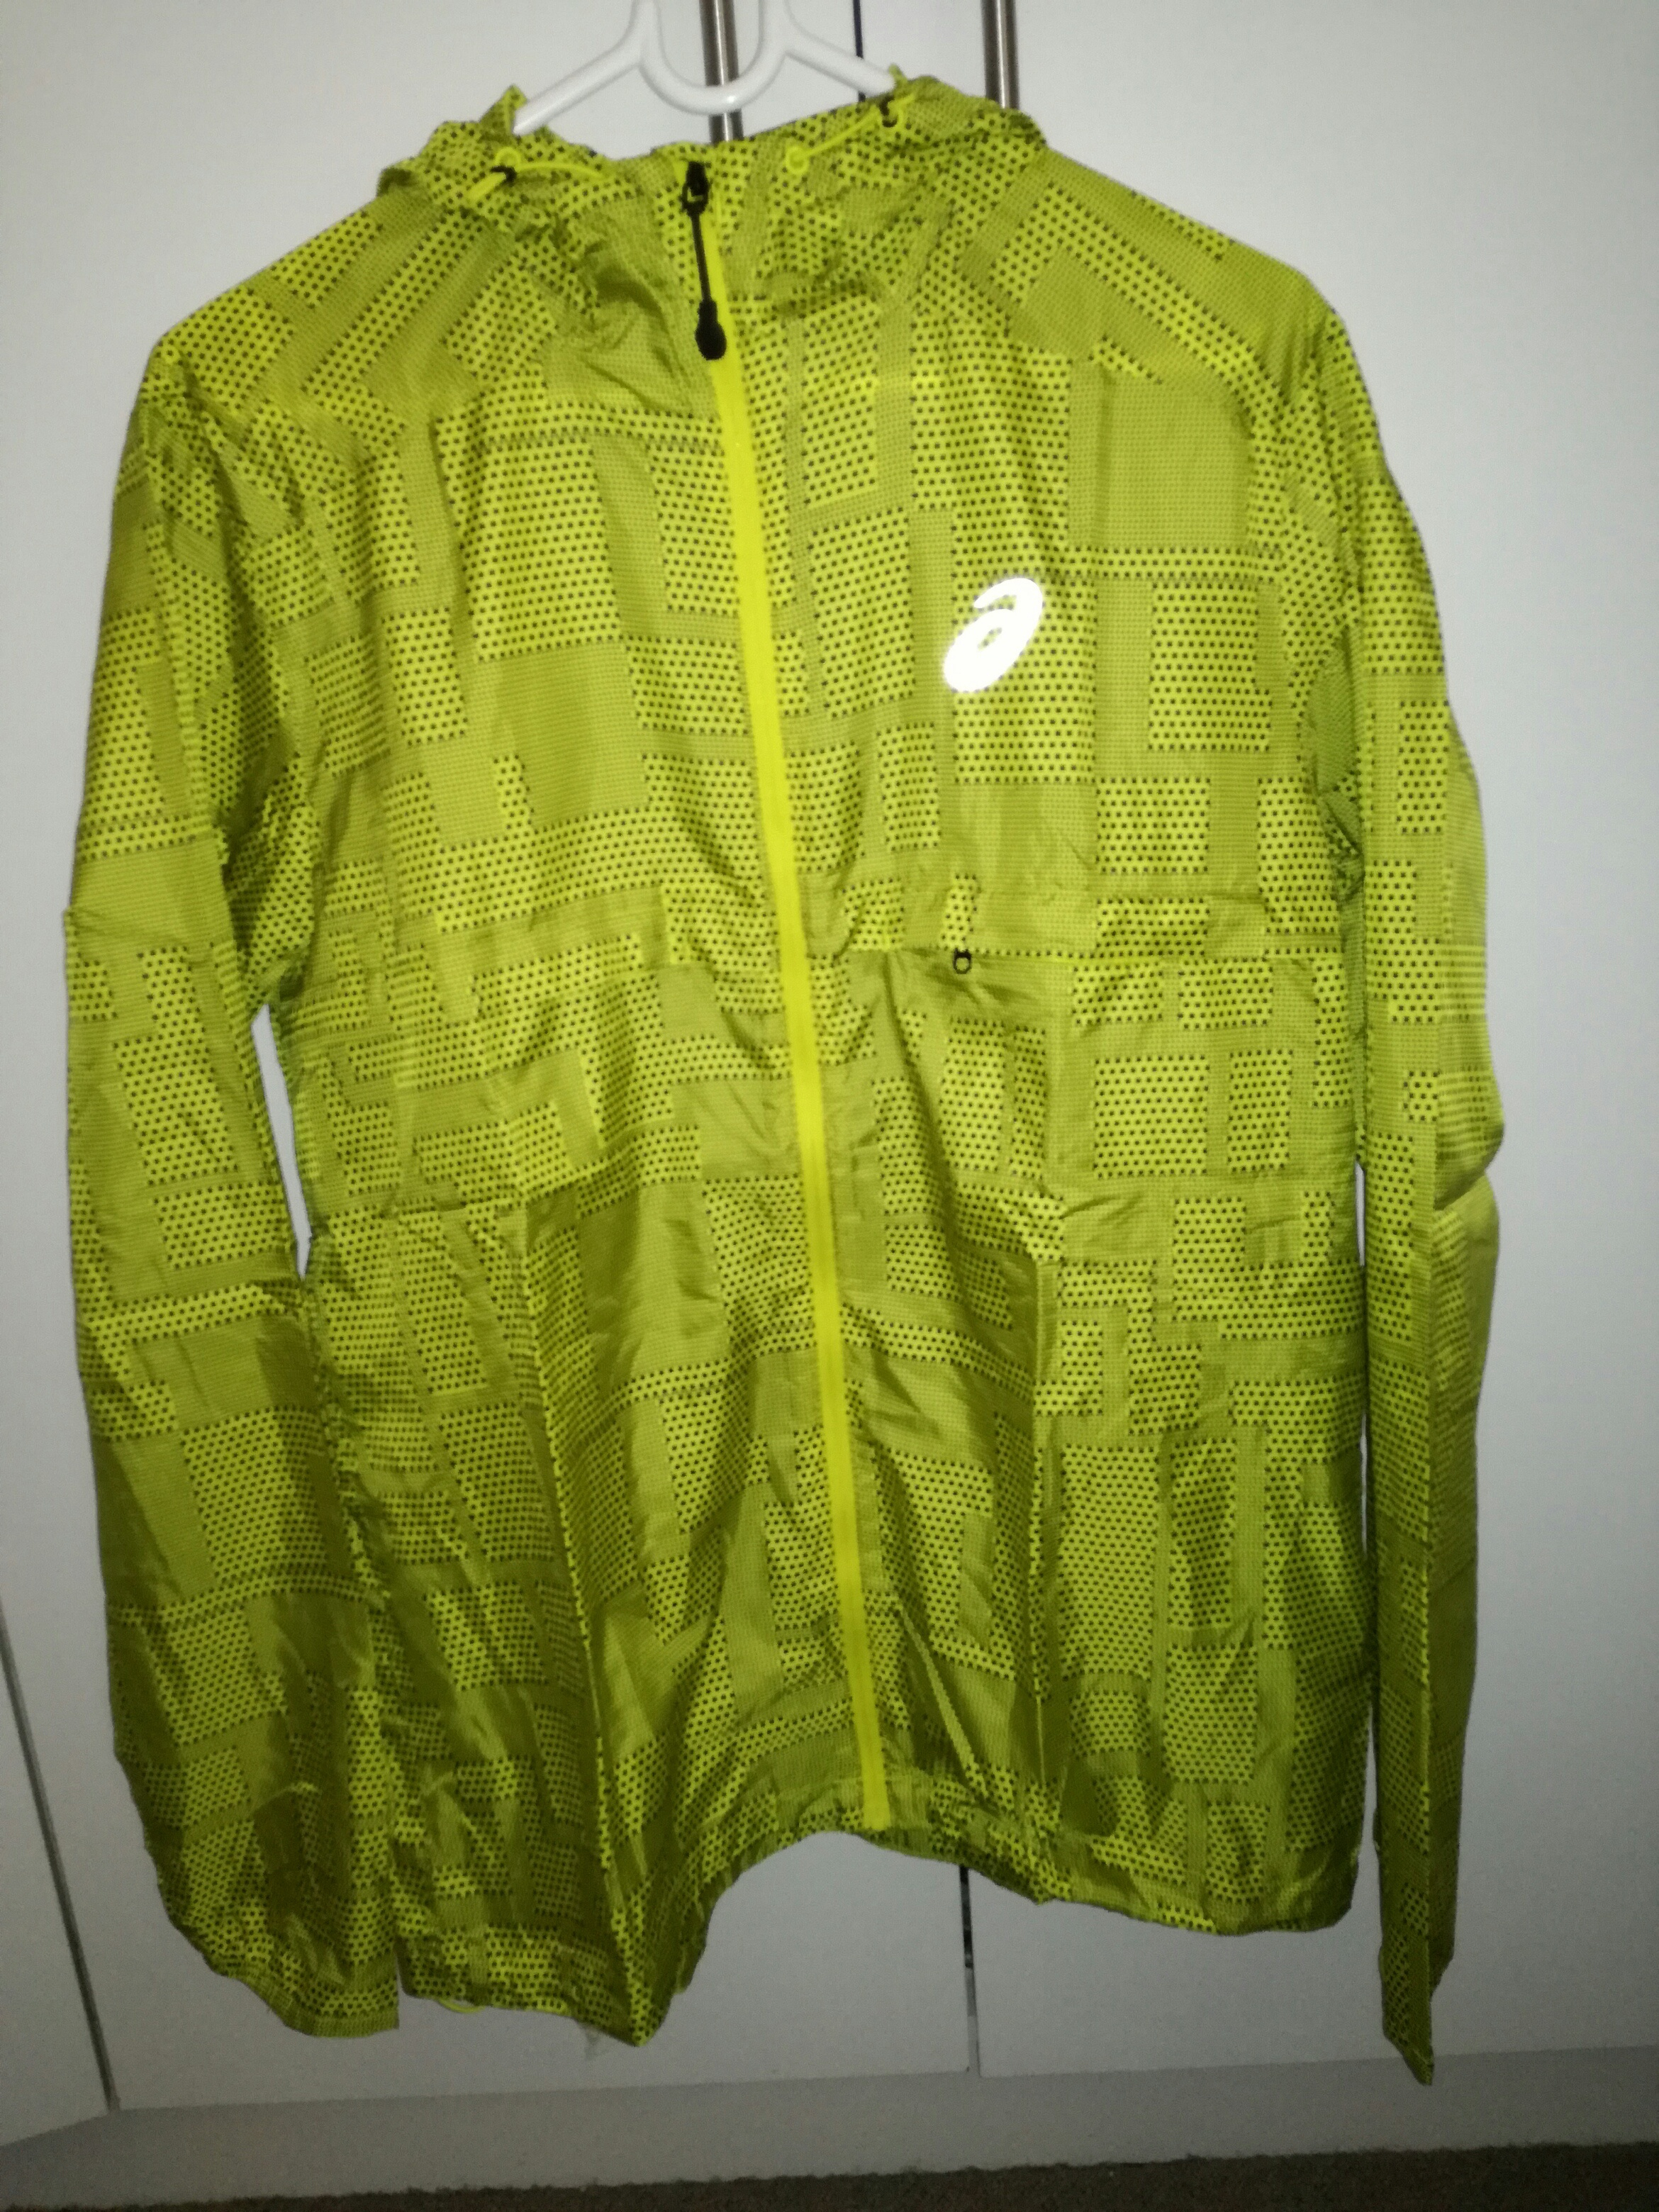 Asics fujitrail packable jacket. S Nwt. Light weighted trail